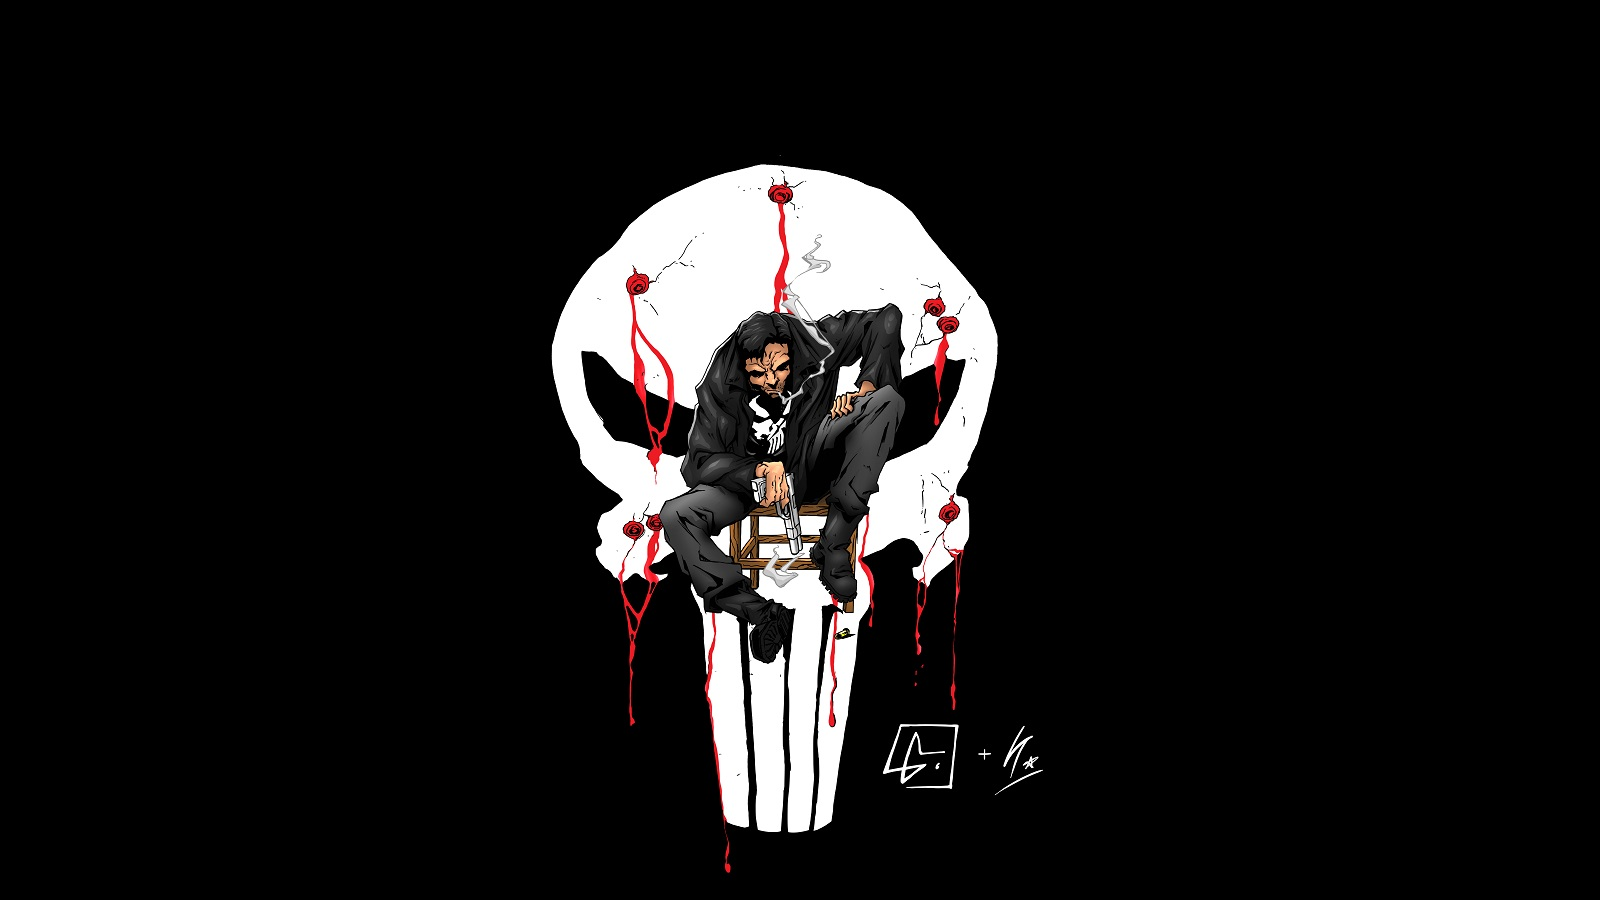 Related Pictures bloody punisher iphone 4 wallpaper 4iphonewallpapers ...